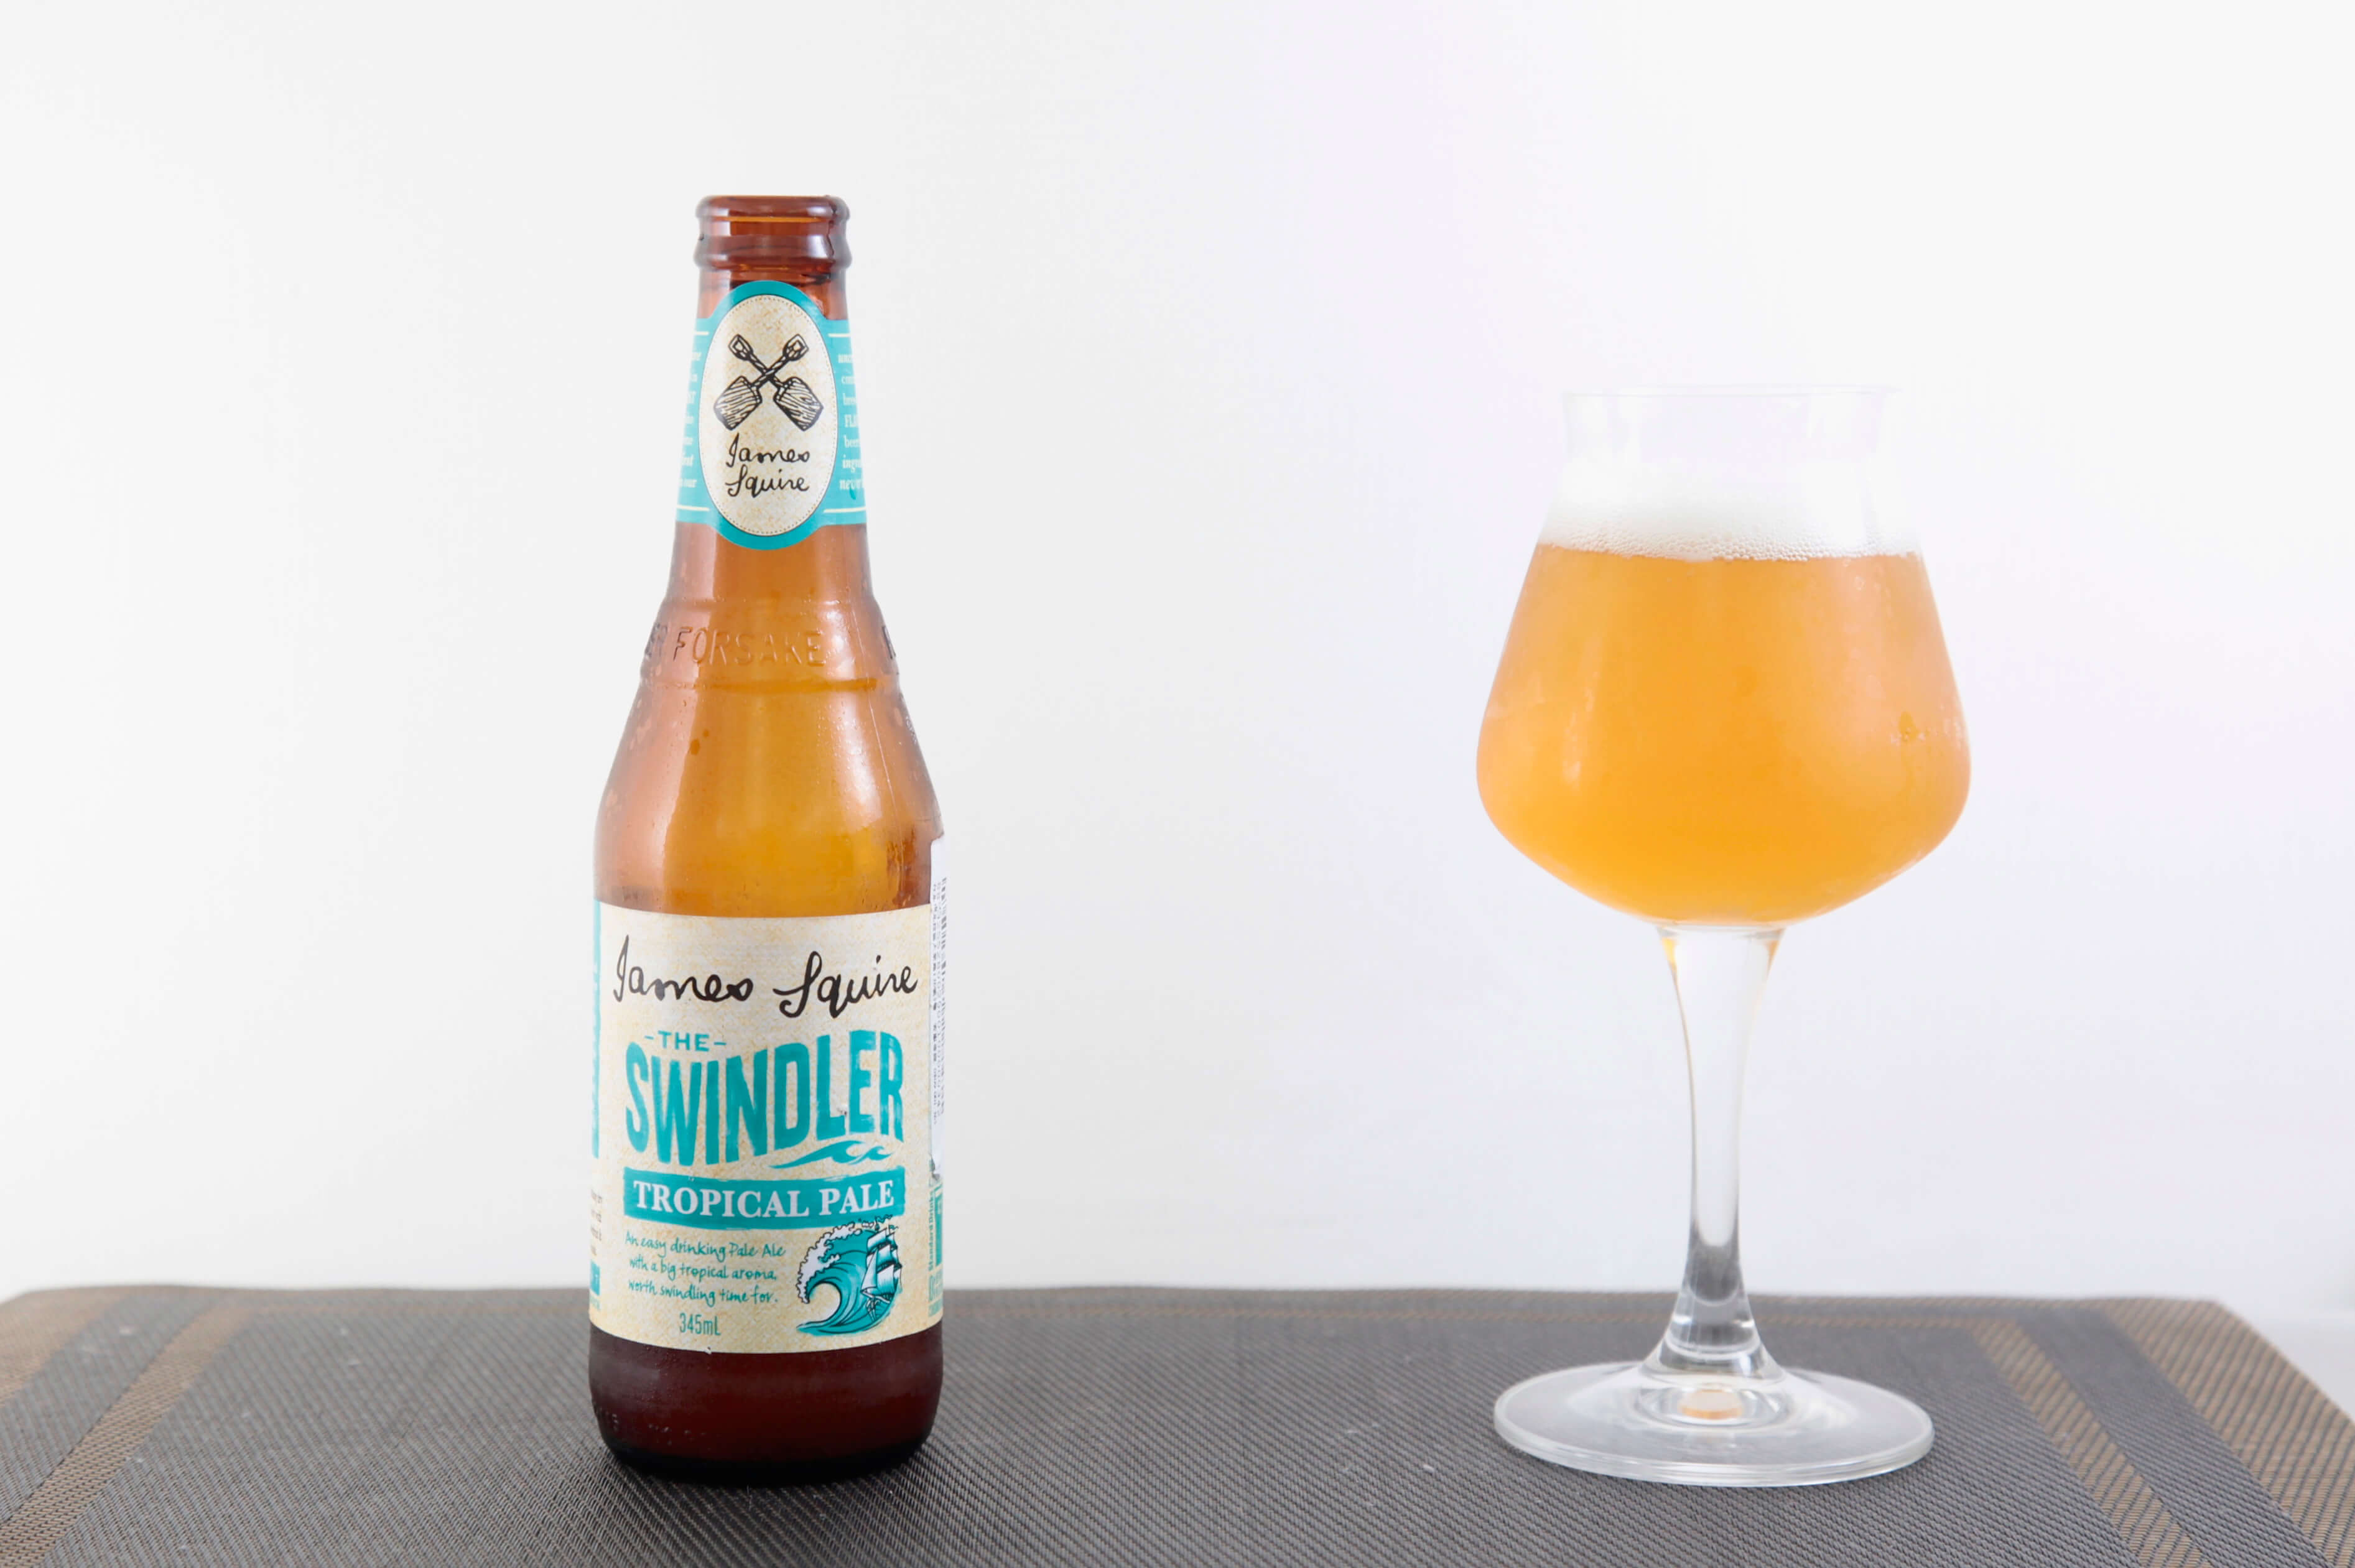 James Squire | The Swindler Tropical Ale 老千啤酒